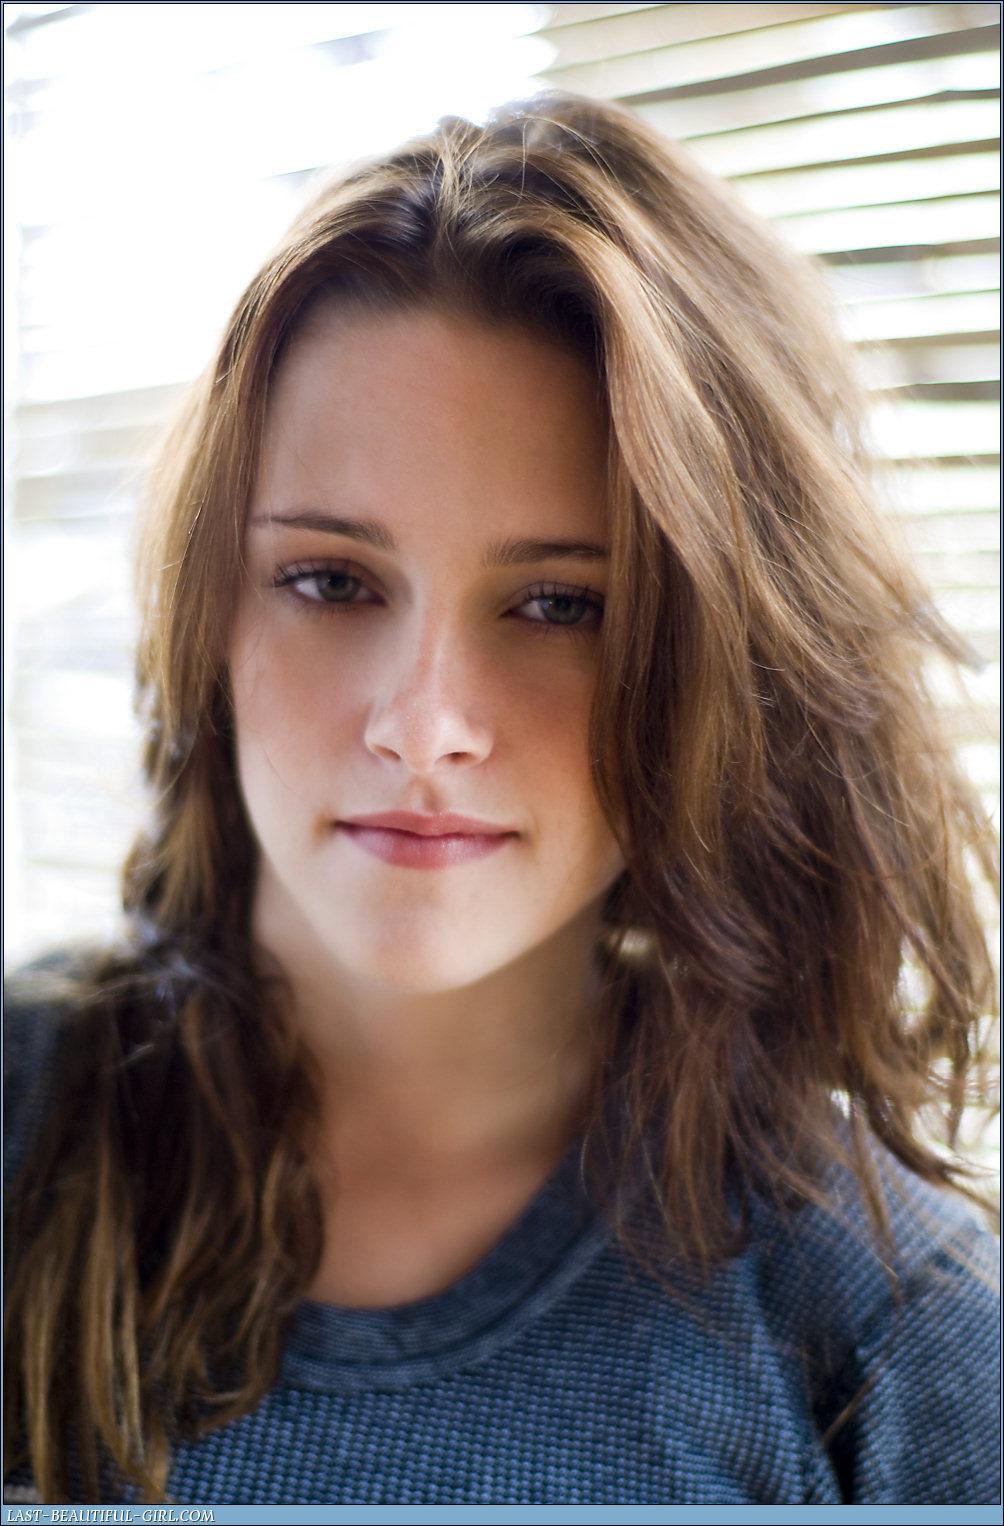 http://images2.fanpop.com/images/photos/7300000/More-Oldies-But-Goodies-kristen-stewart-7358026-1004-1526.jpg